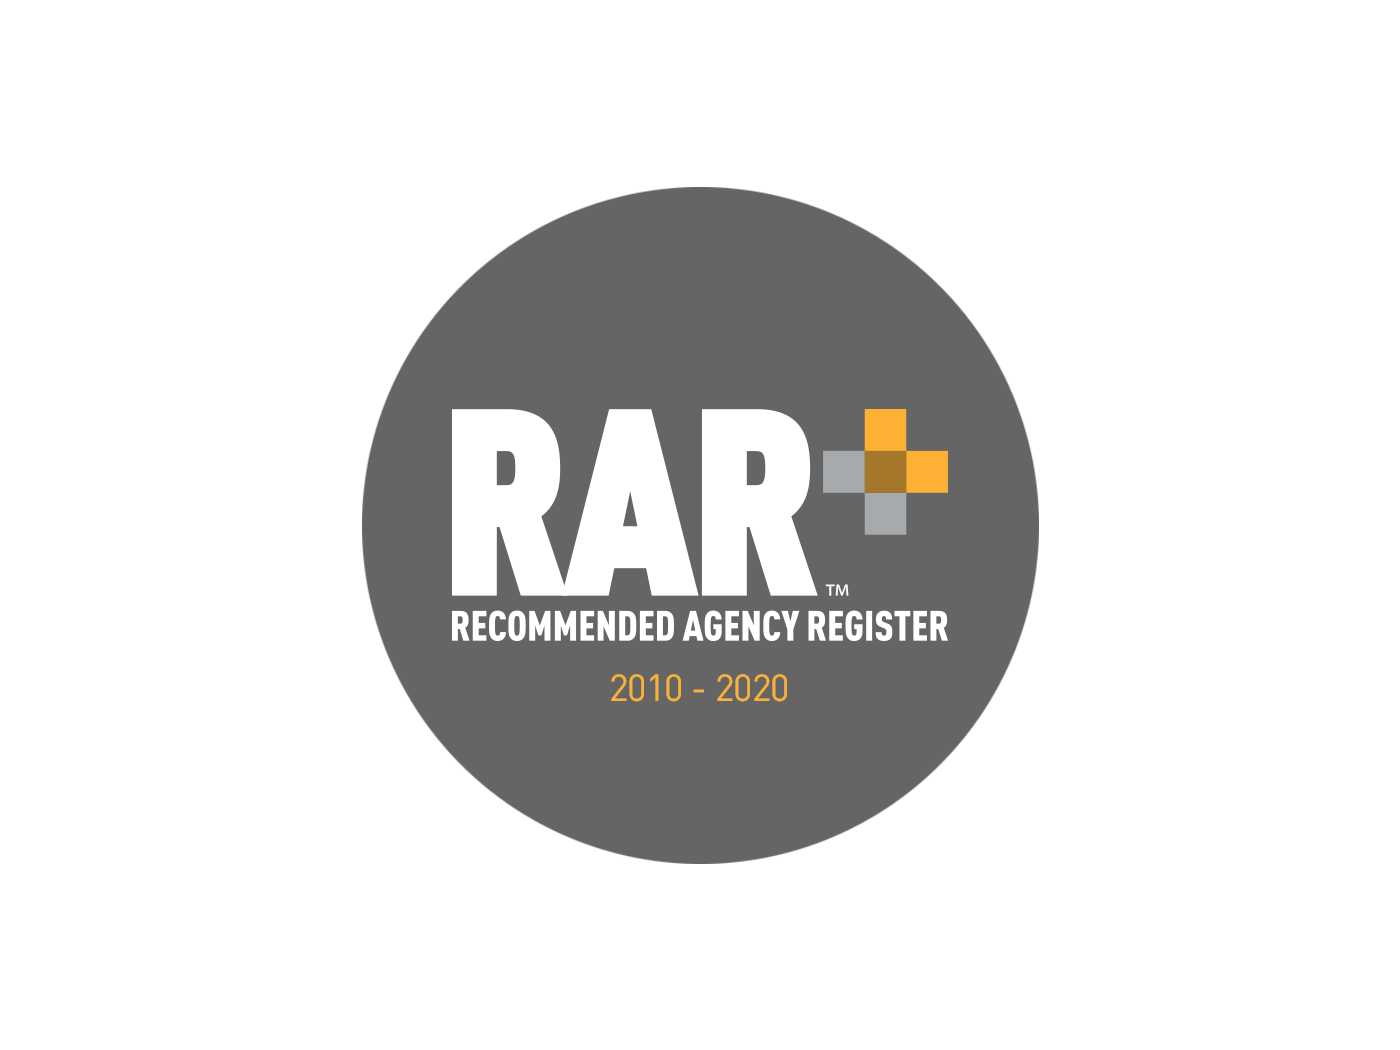 Recommended Agency Register Since 2010